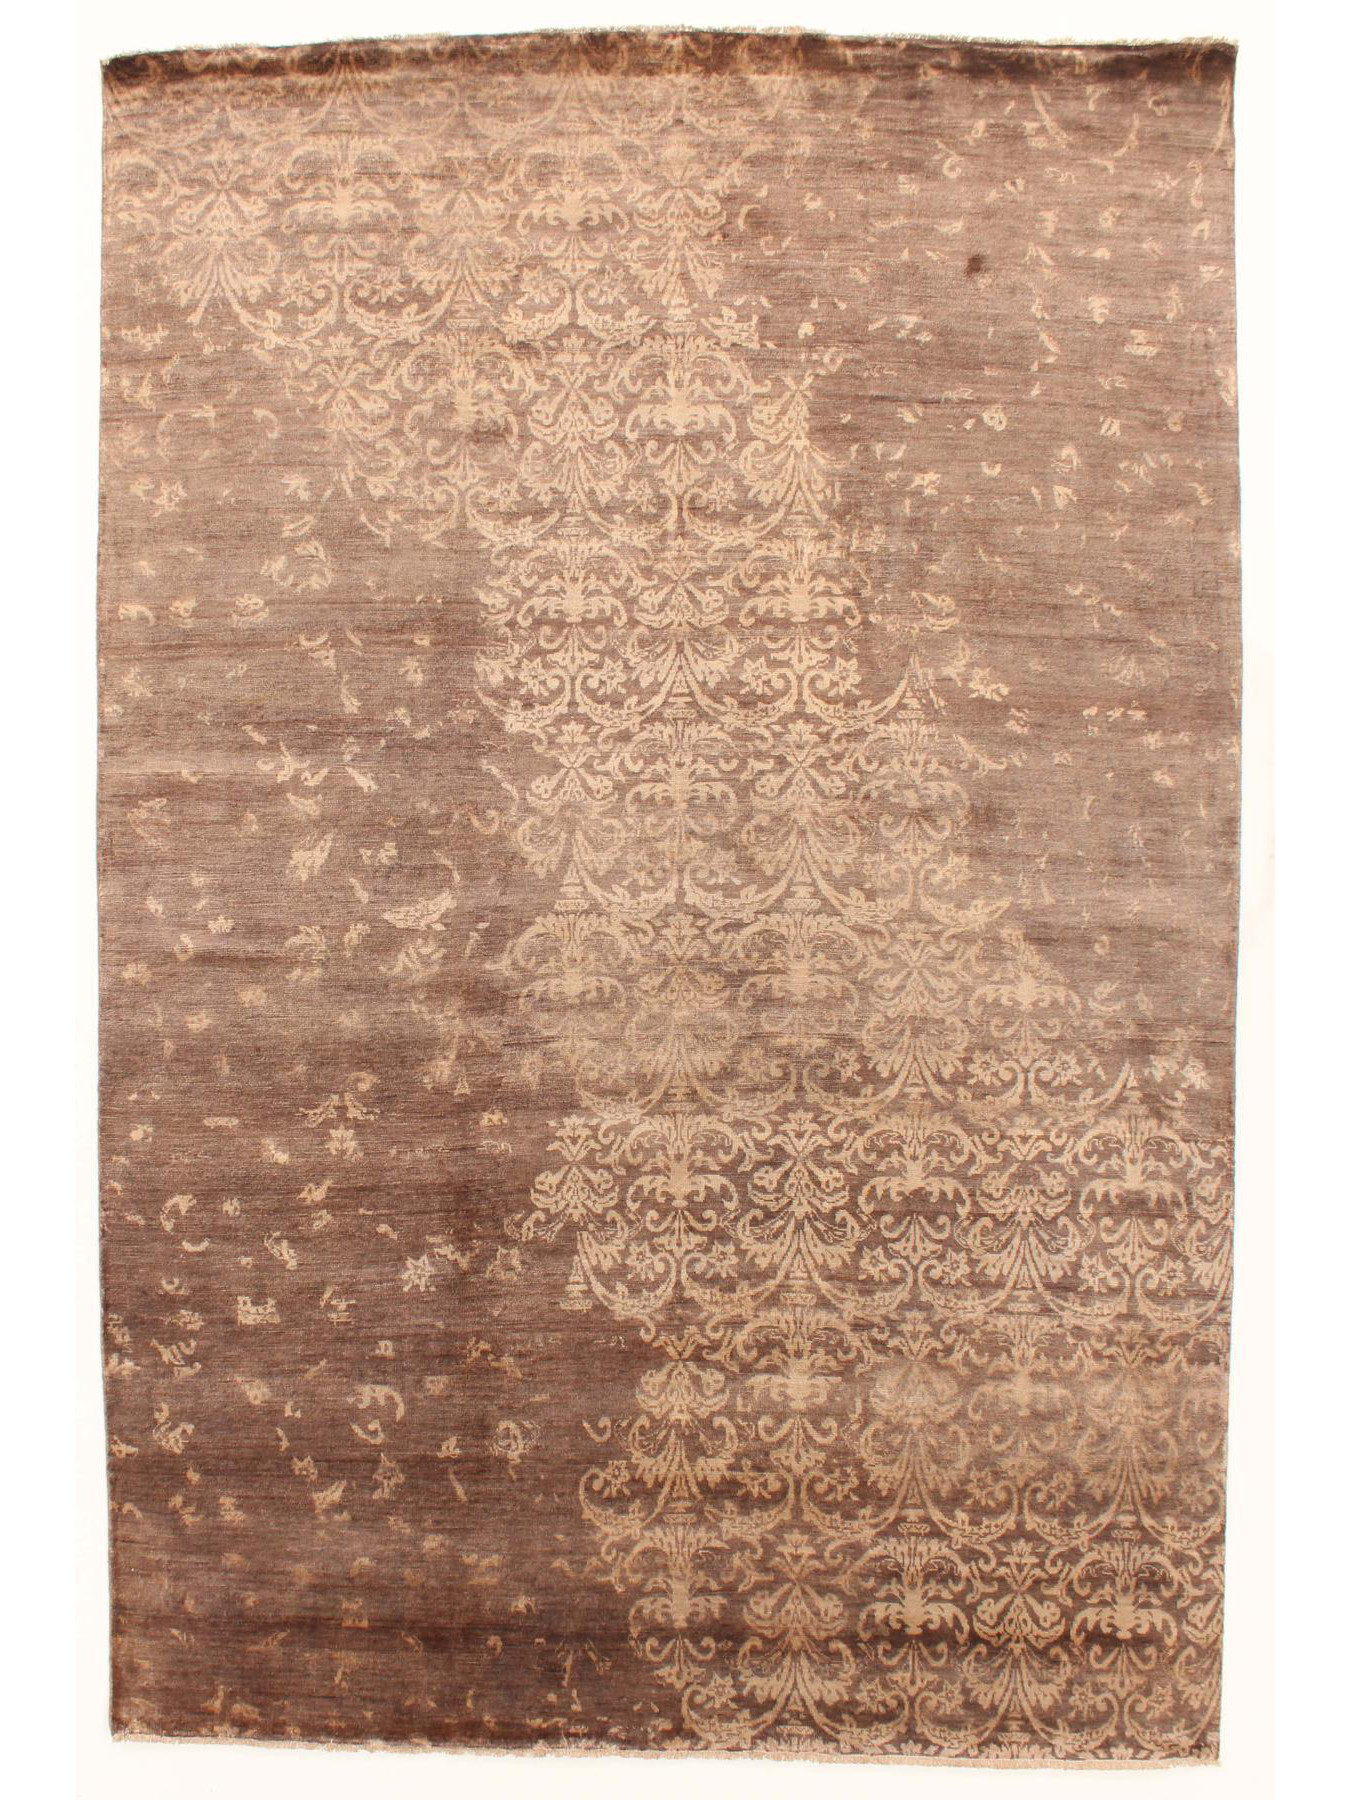 Luxury carpets - Damask-AL-2E B-7/B-34/Gold Outlet